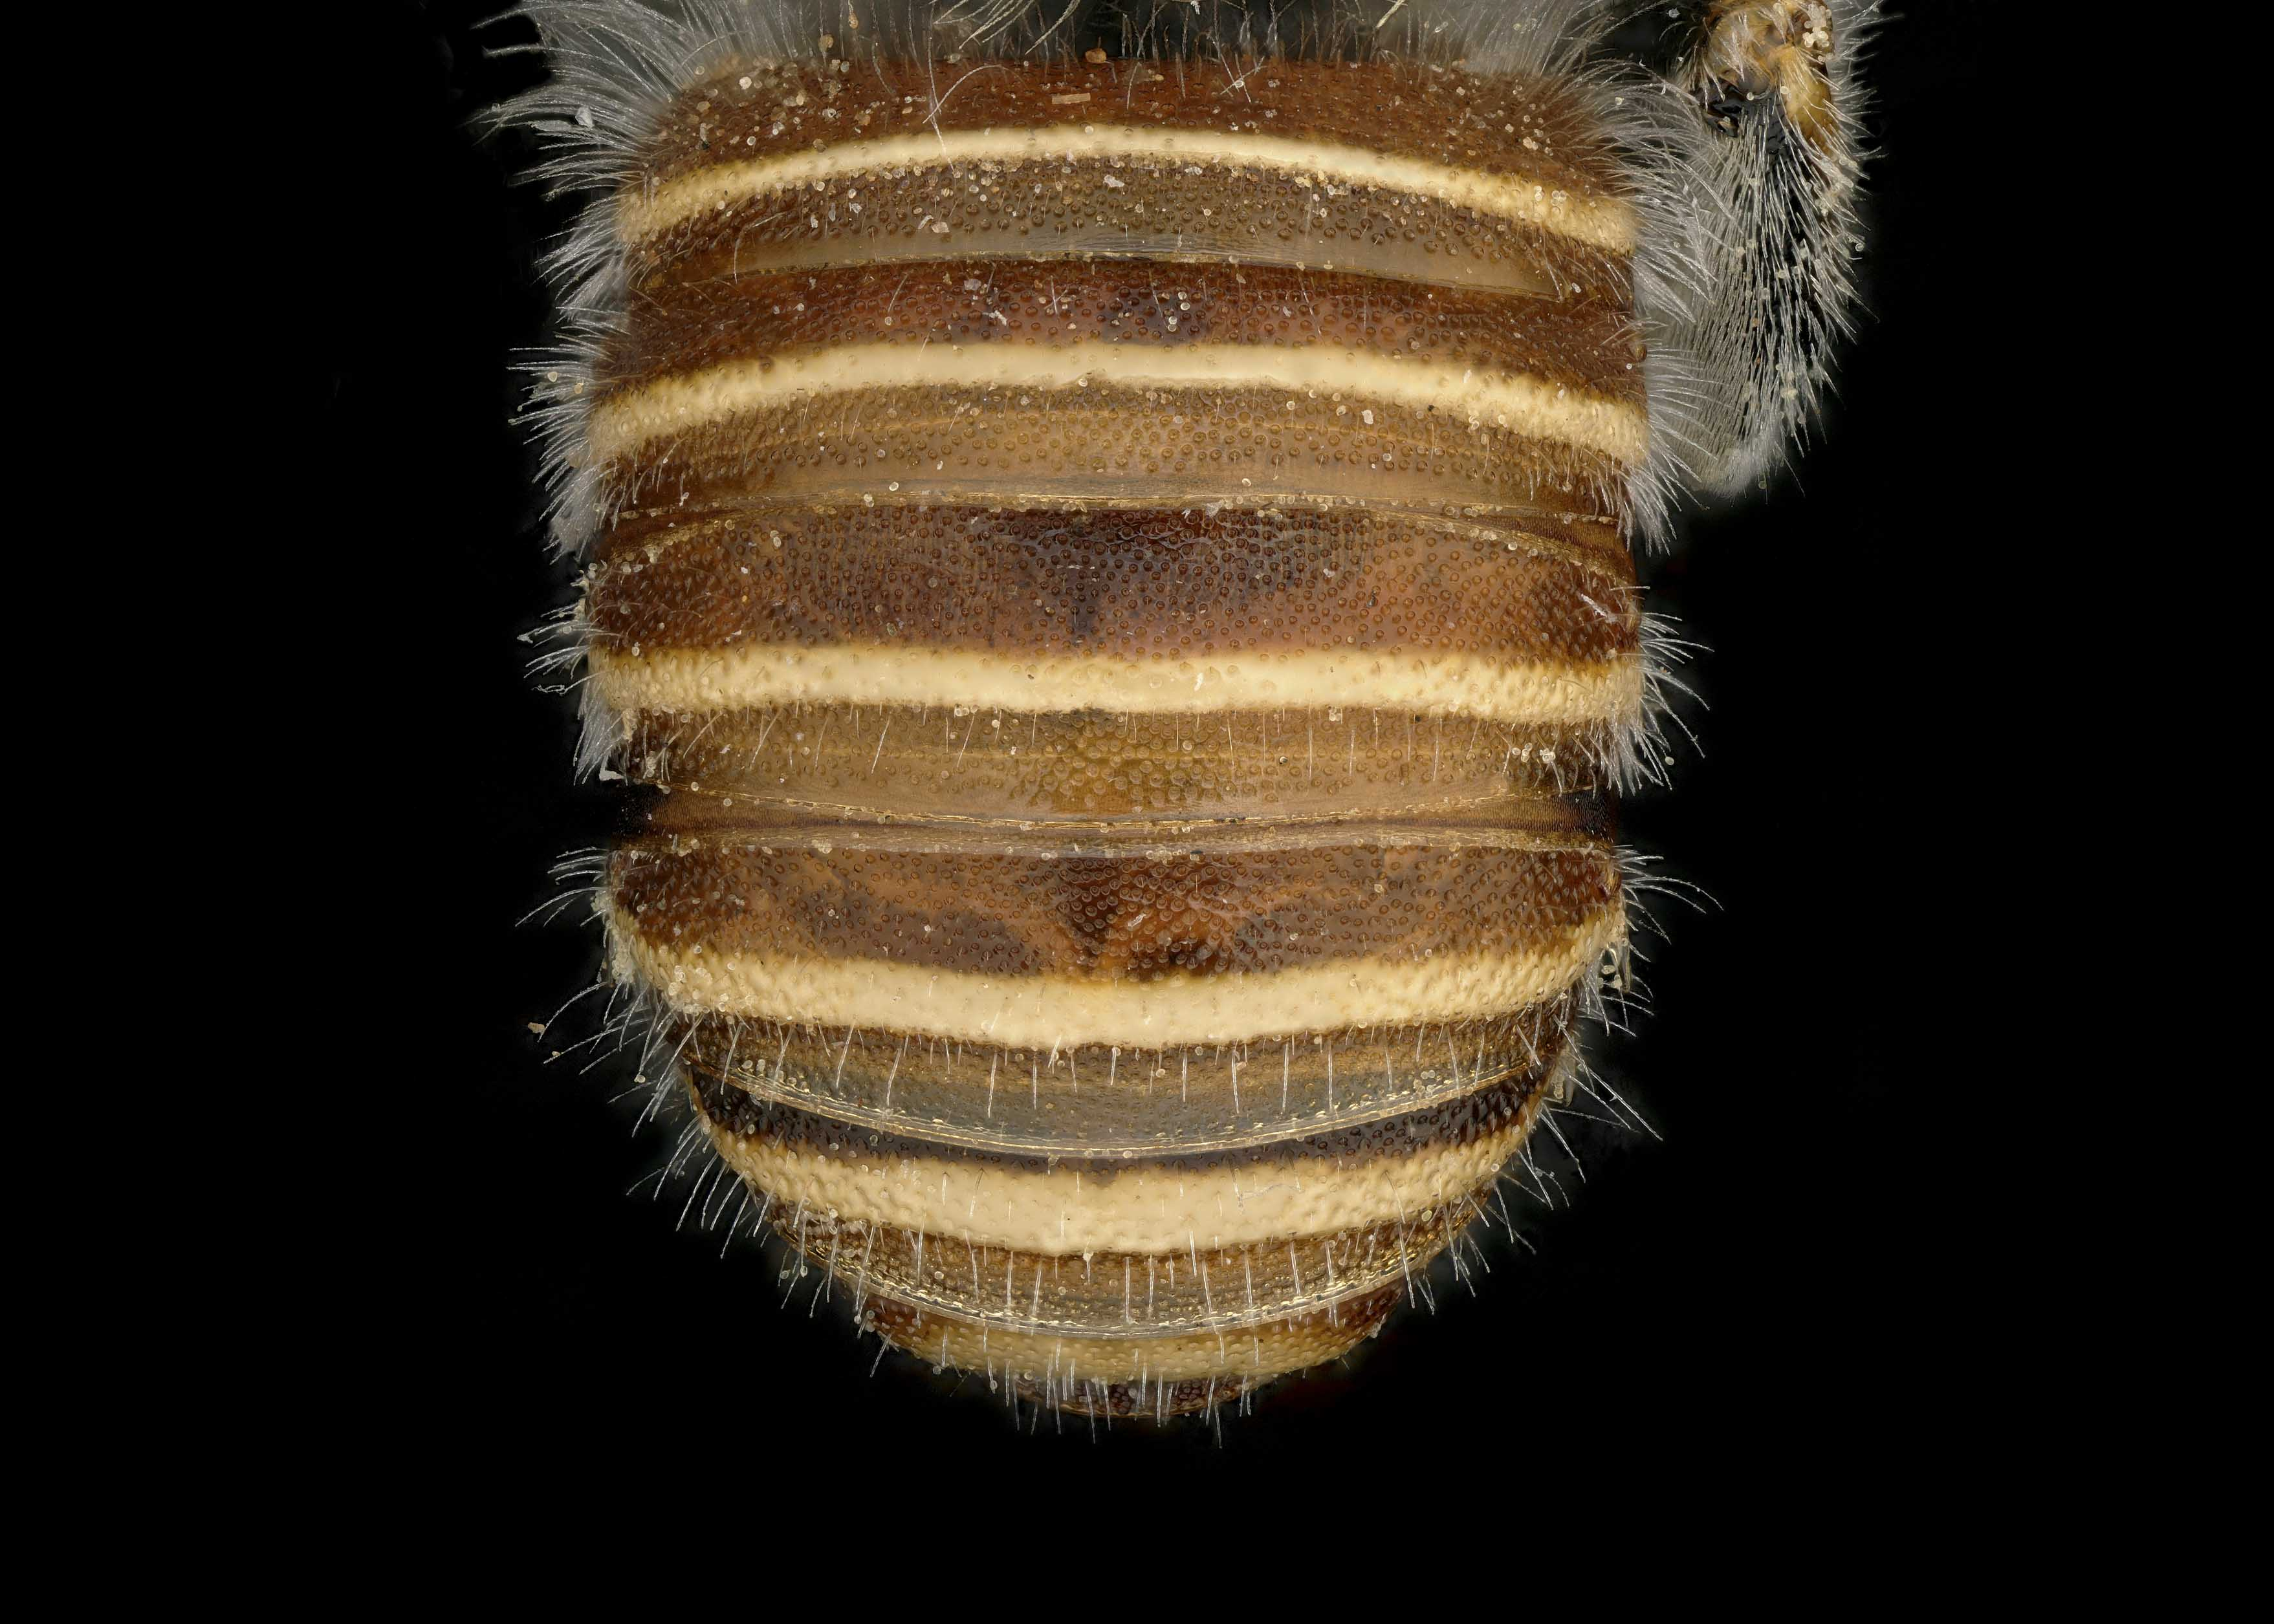 FIg 3. <em>Afranthidium karooense </em>male abdomen.  Photo: T. Brady